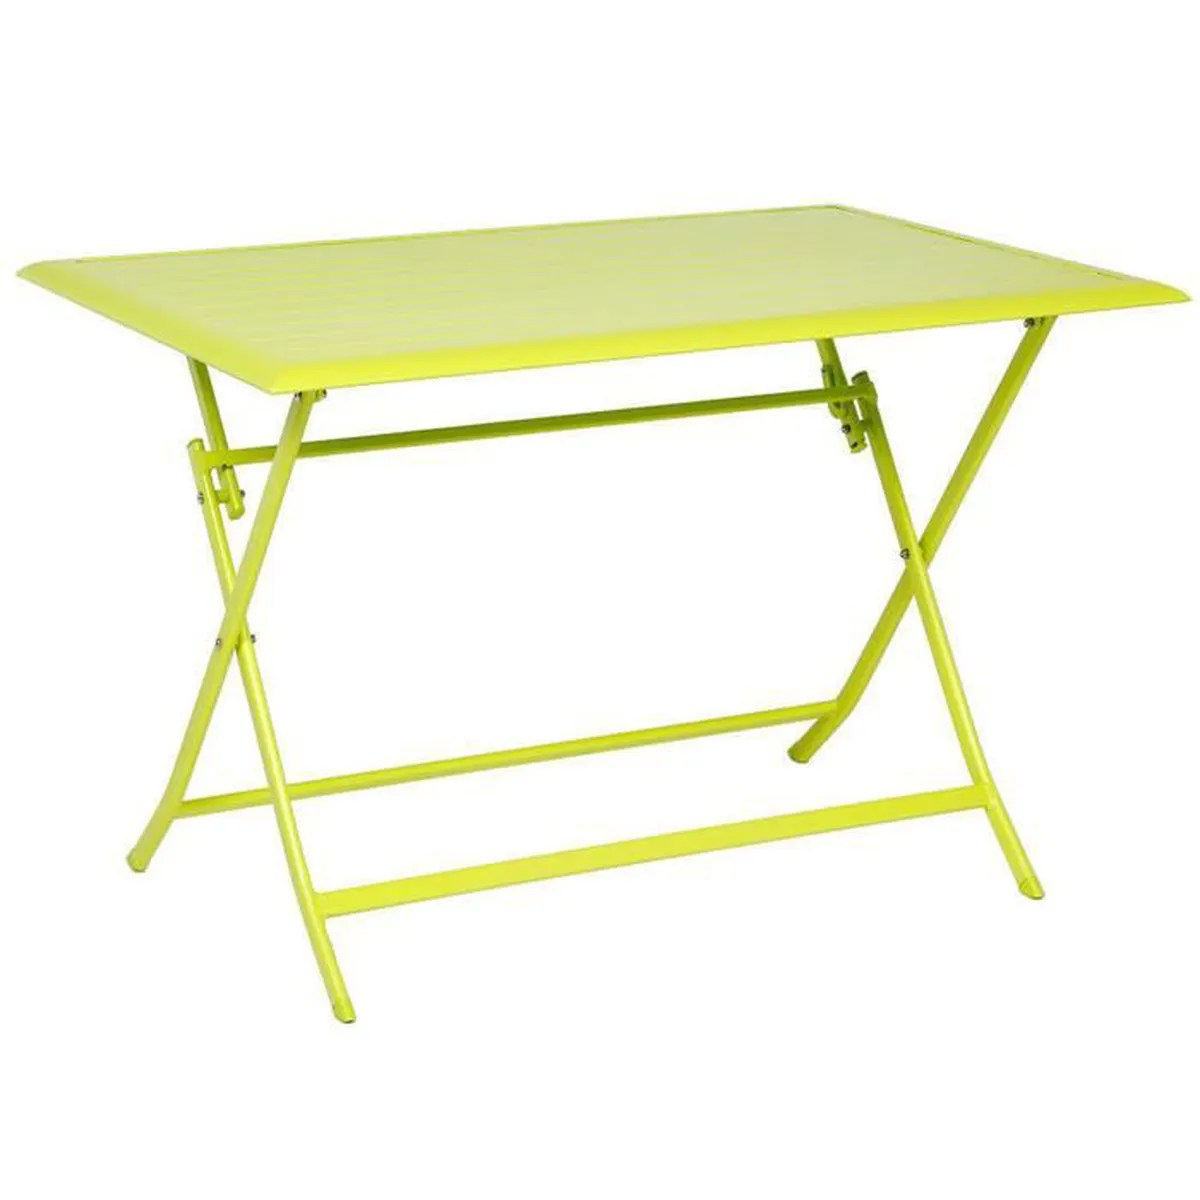 Table Aluminium Pliante Table Pliante Rectangulaire En Aluminium Coloris Granny Dim L